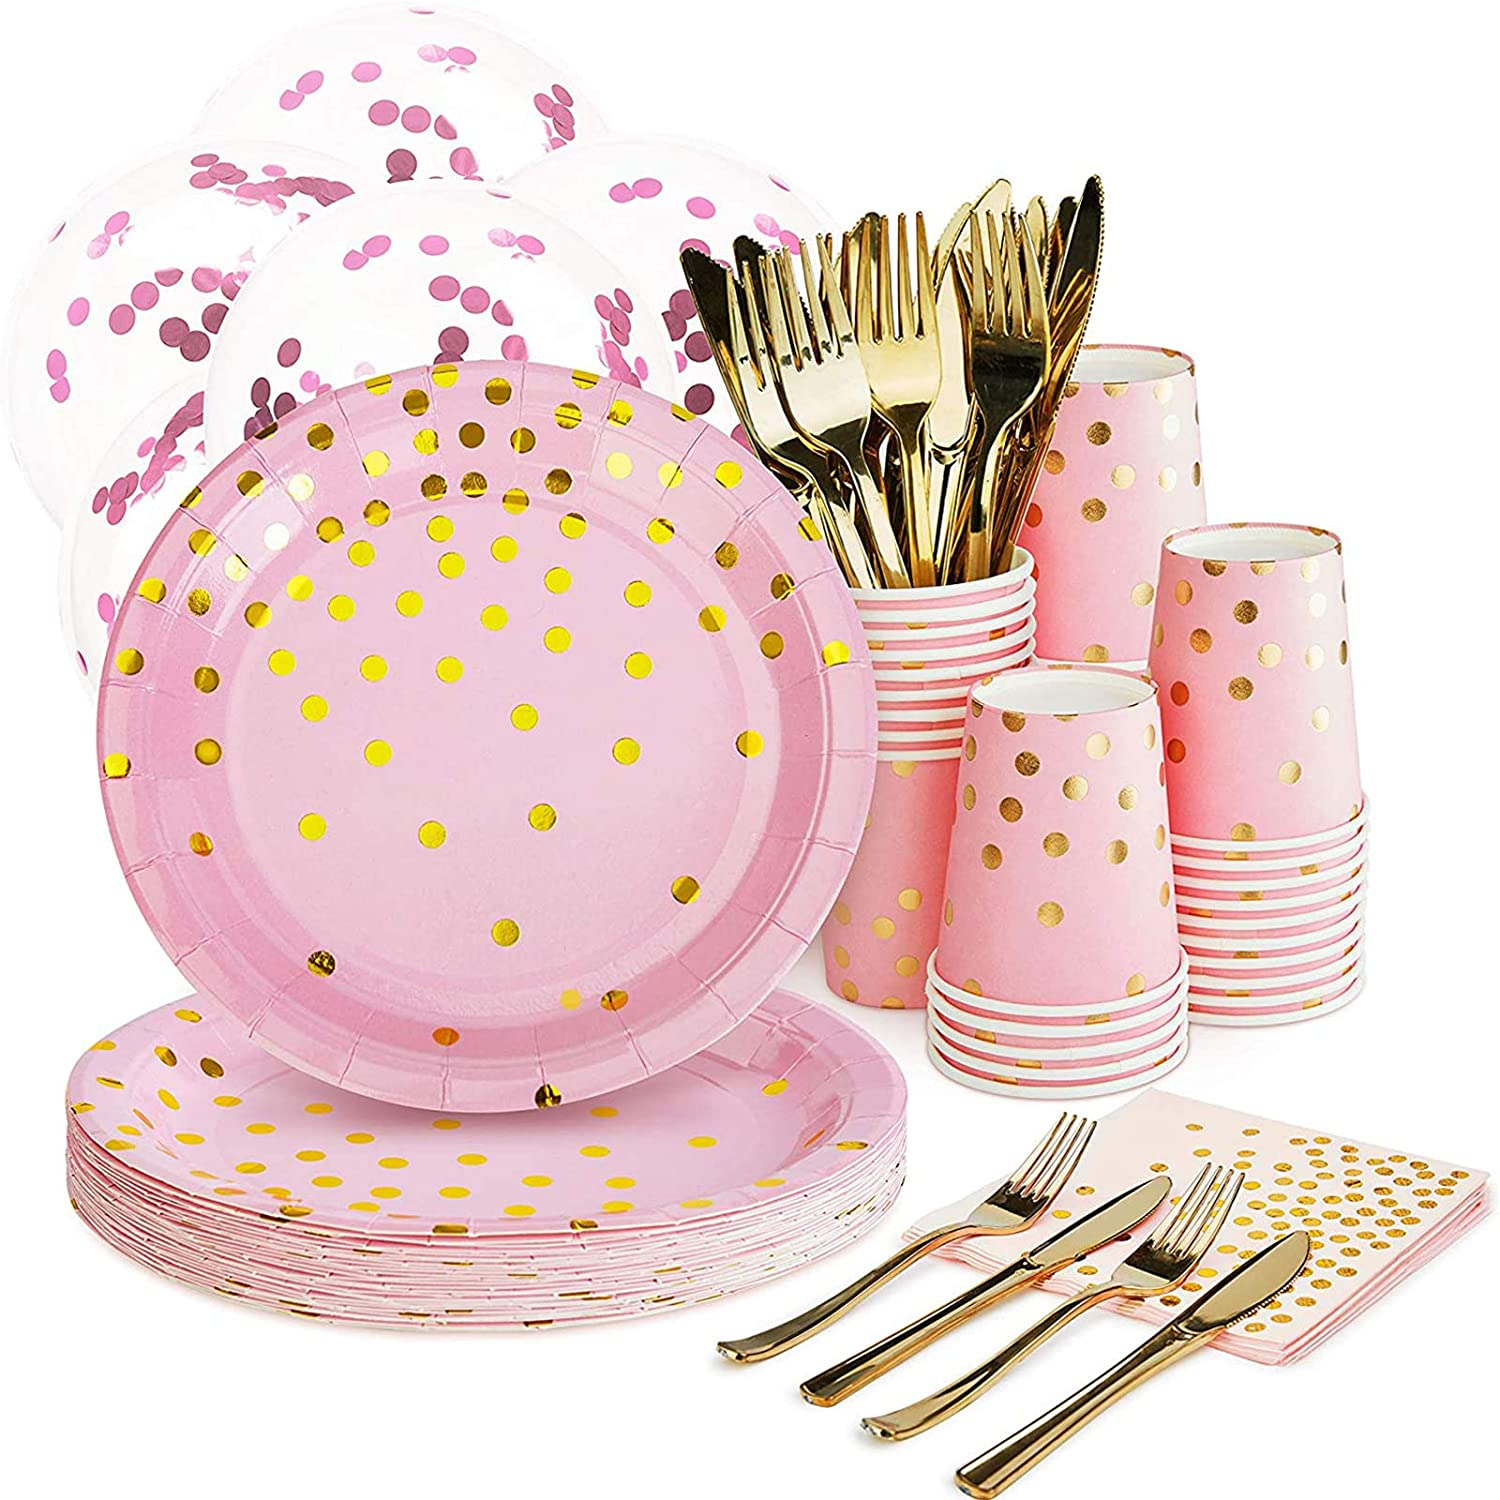 "Pink and Gold Party Supplies Set - 168PCS Pink Paper Plates Disposable Dinnerware Set Dots 7"" & 9"" Paper Plates Napkins Cups Forks Knives Balloons Serve 24 Birthday Party Wedding Baby Shower"